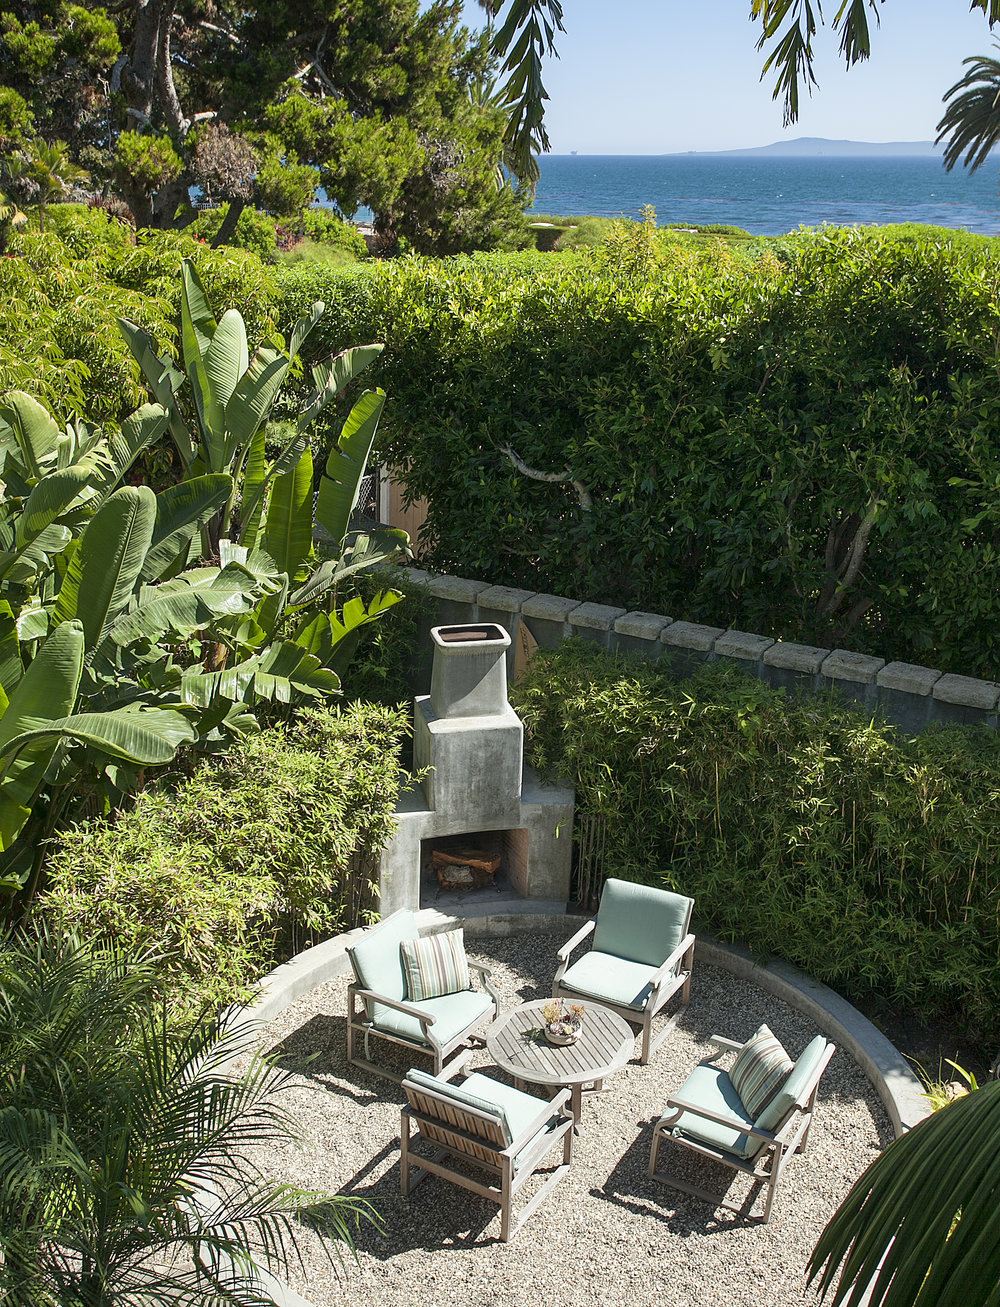 1159 Hill Road Montecito 93108 Butterfly beach house for sale riskin partners